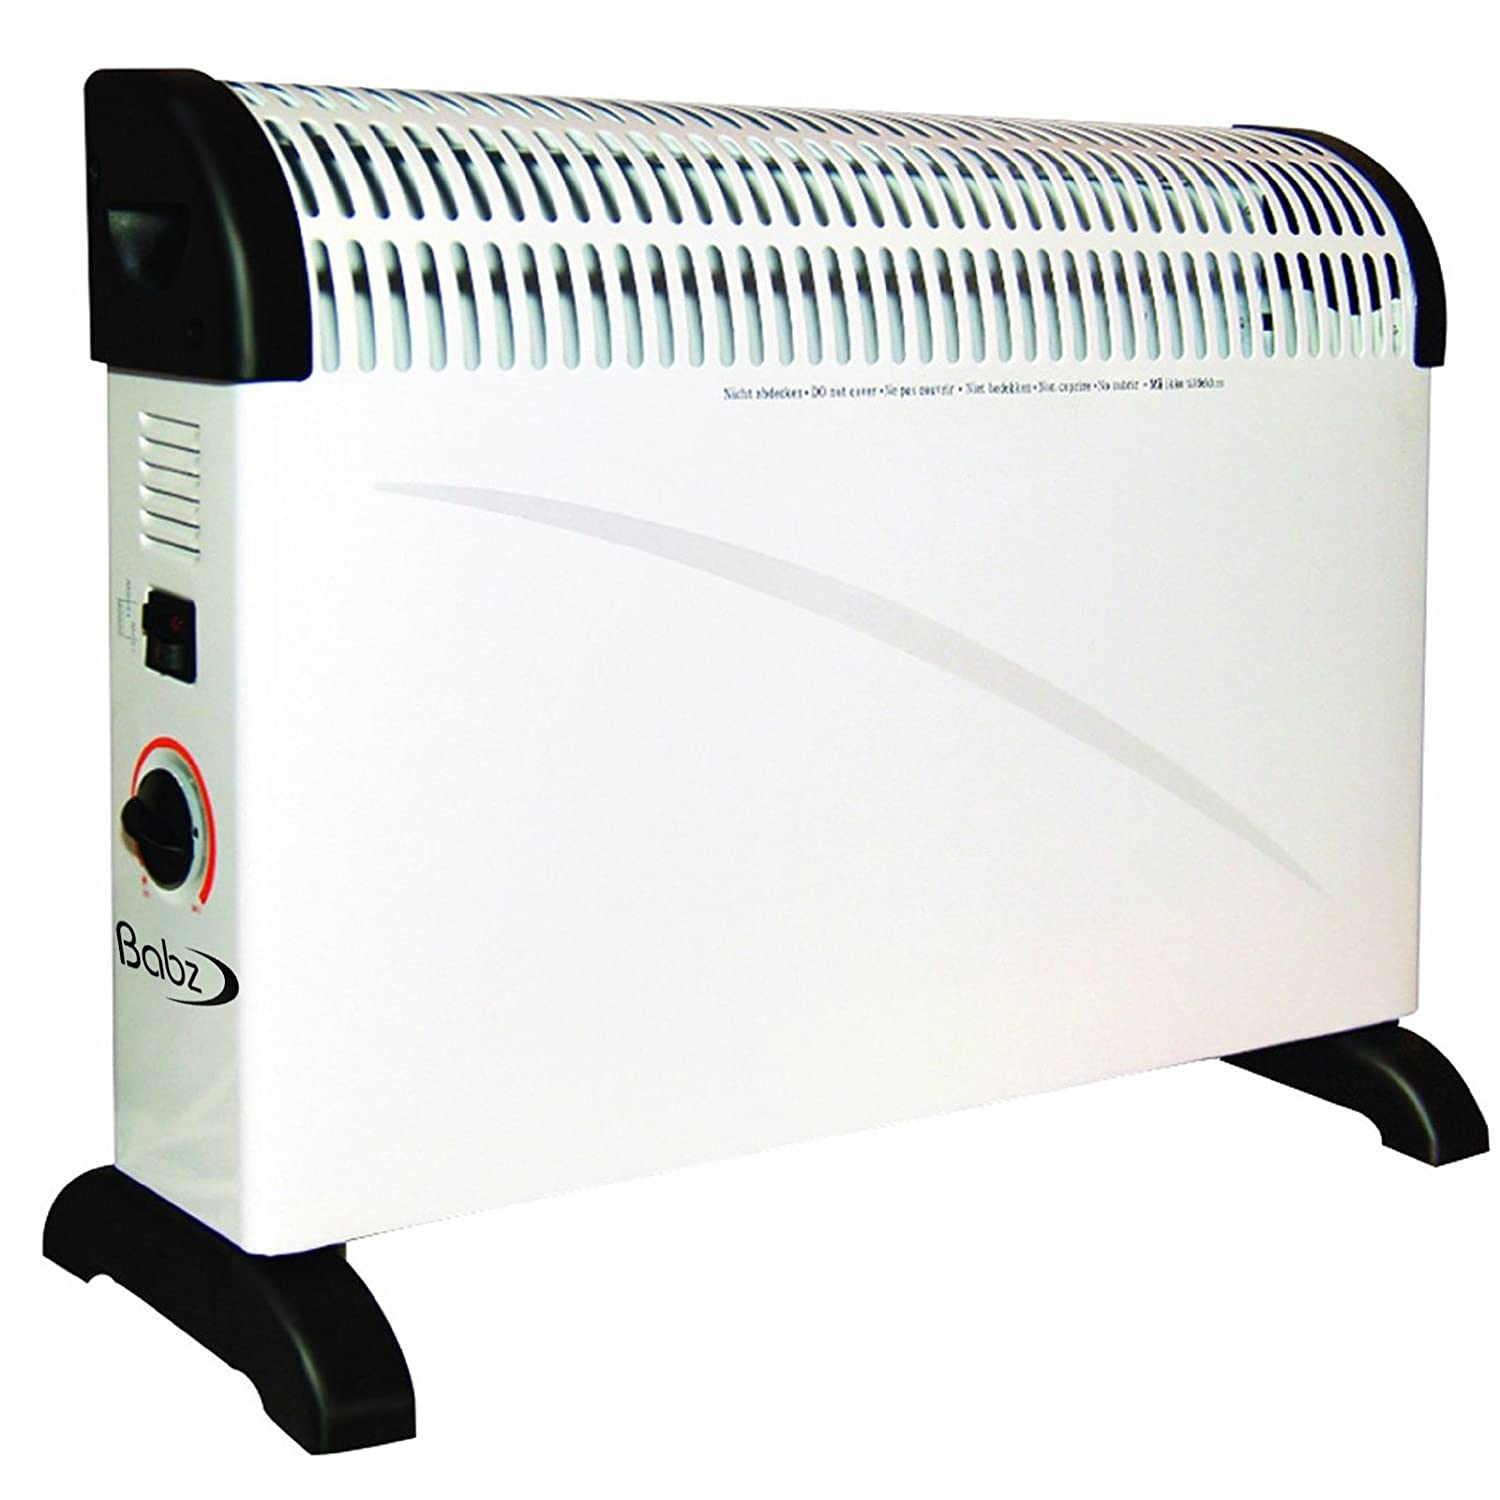 Babz 2KW 2000W Convector Heater with Thermostat in White (Convection Heater) Loops